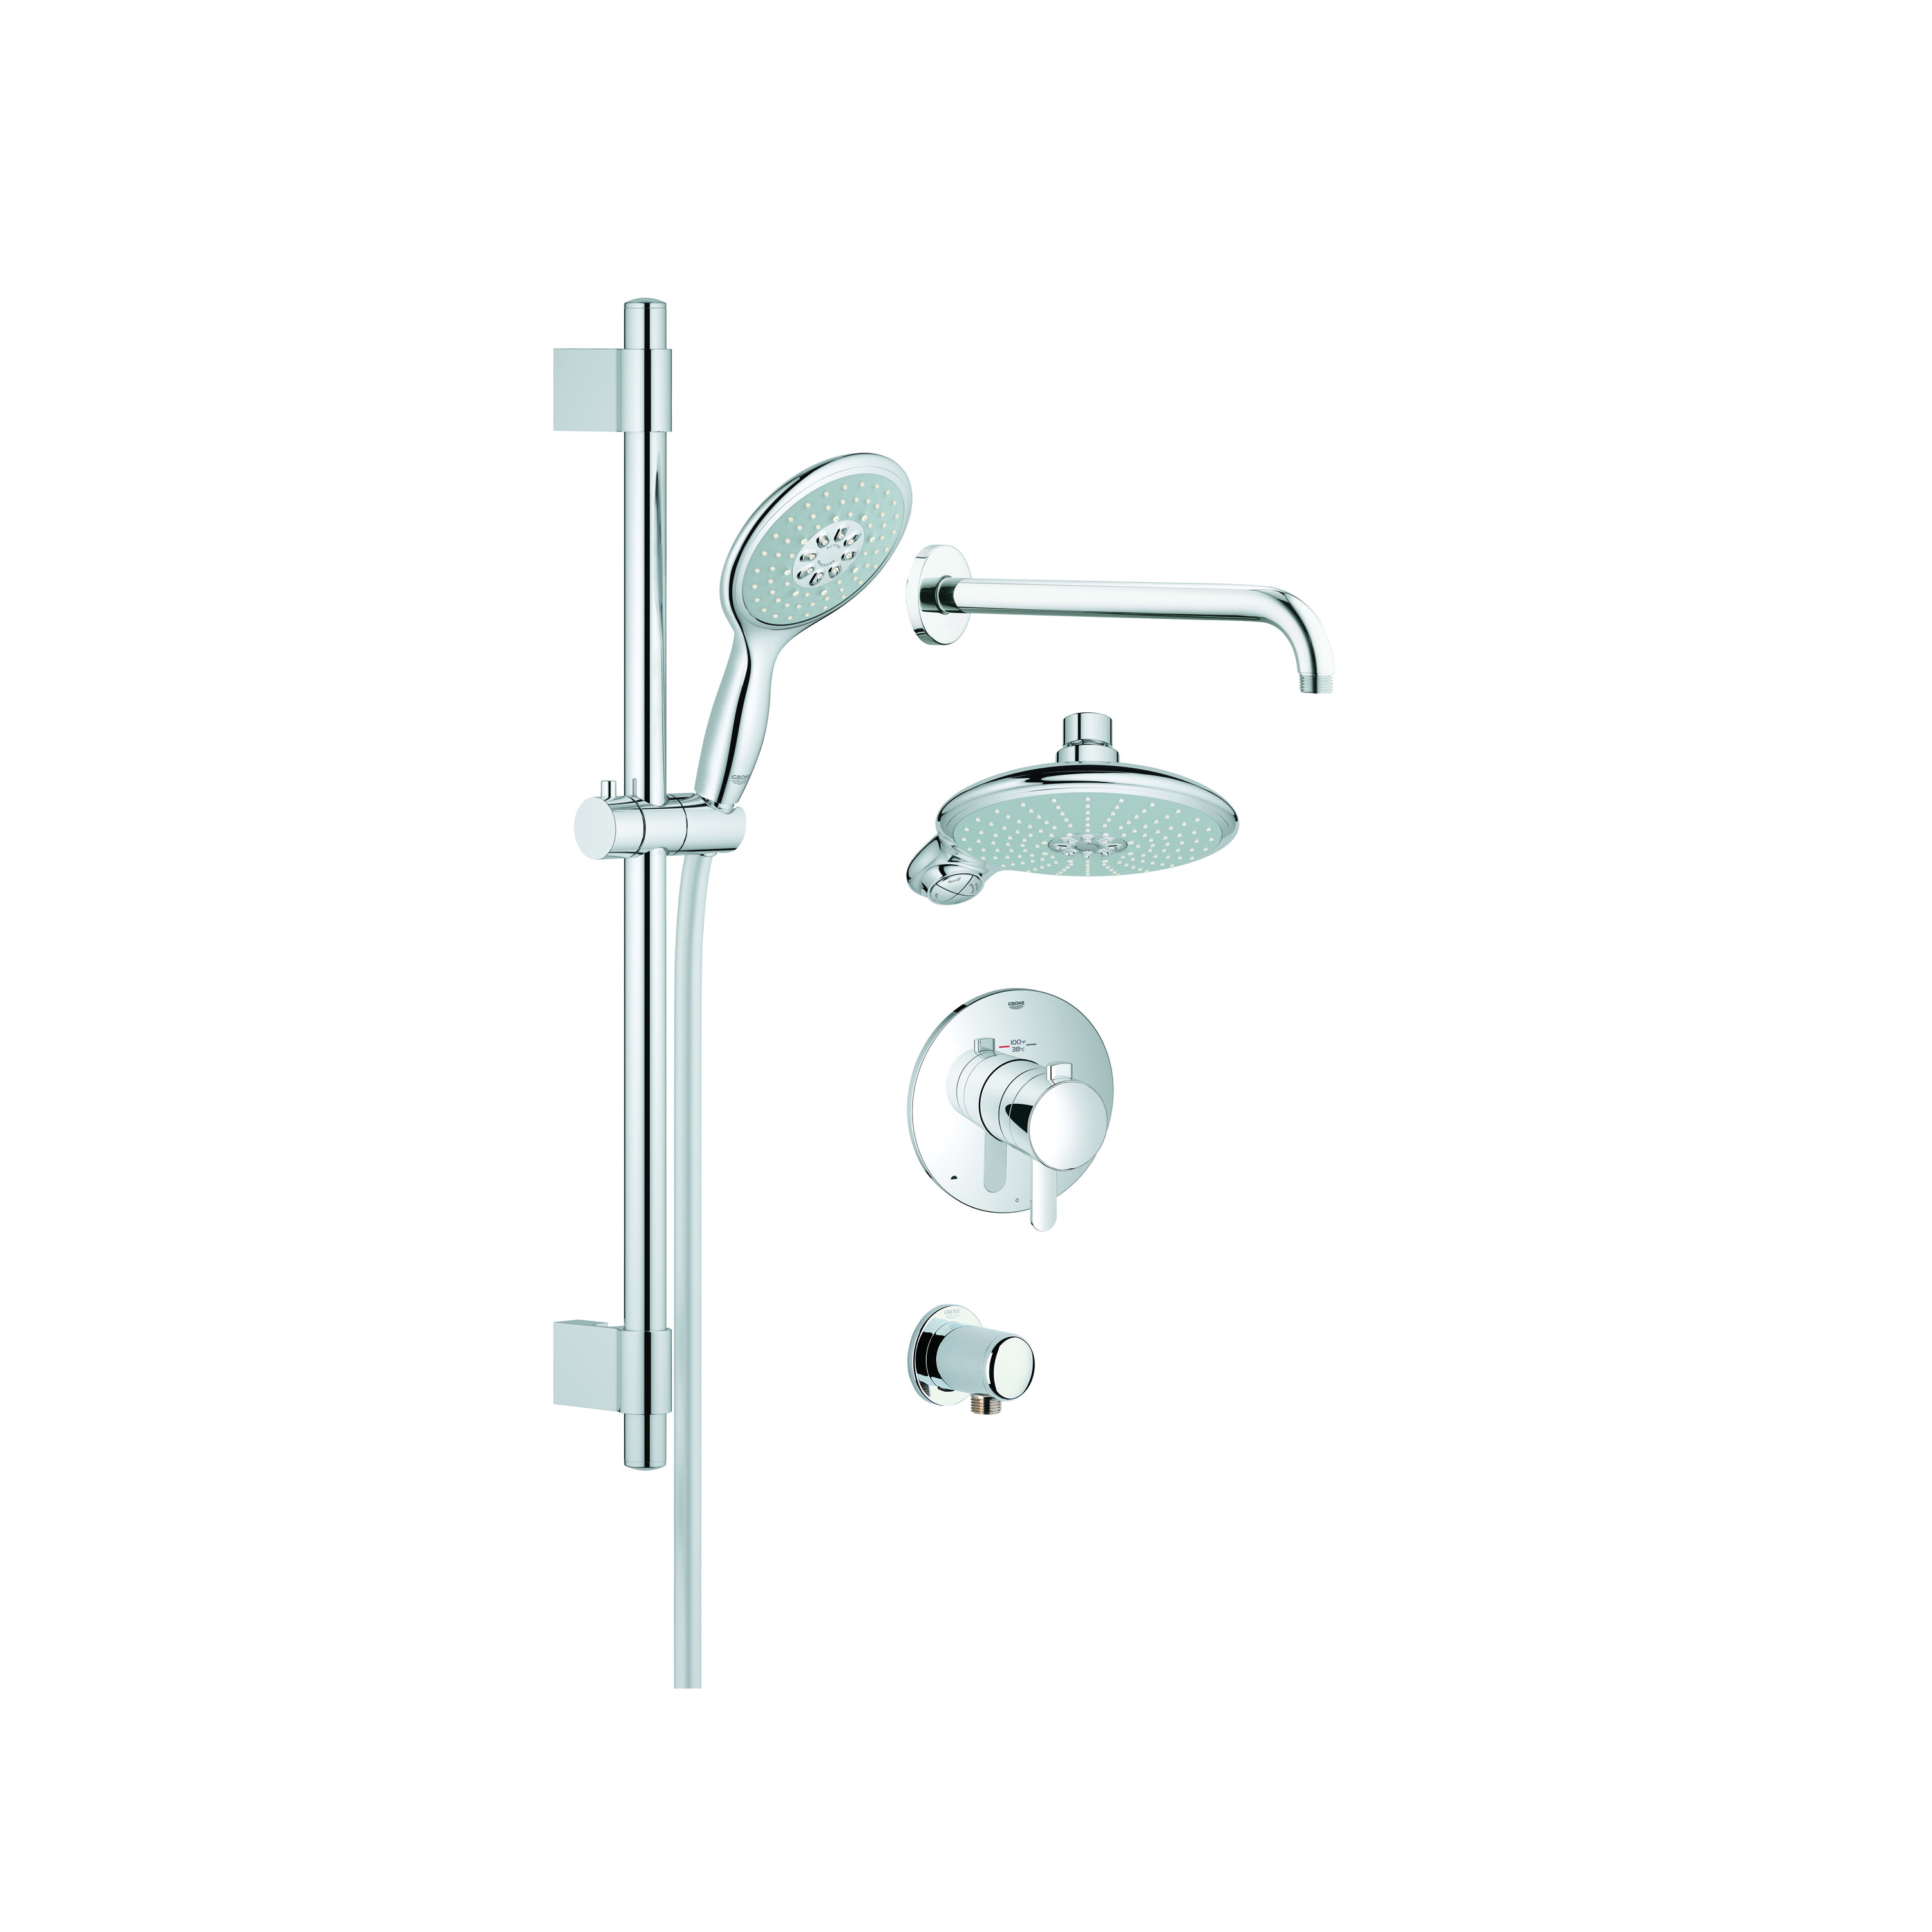 GROHE 35052000 GrohFlex™ Thermostatic Valve Shower Set, 7-1/2 in Dia Head, Multi-Function Water Jet Shower Head, 2.5 gpm, 69 in L Hose, StarLight® Chrome, Import